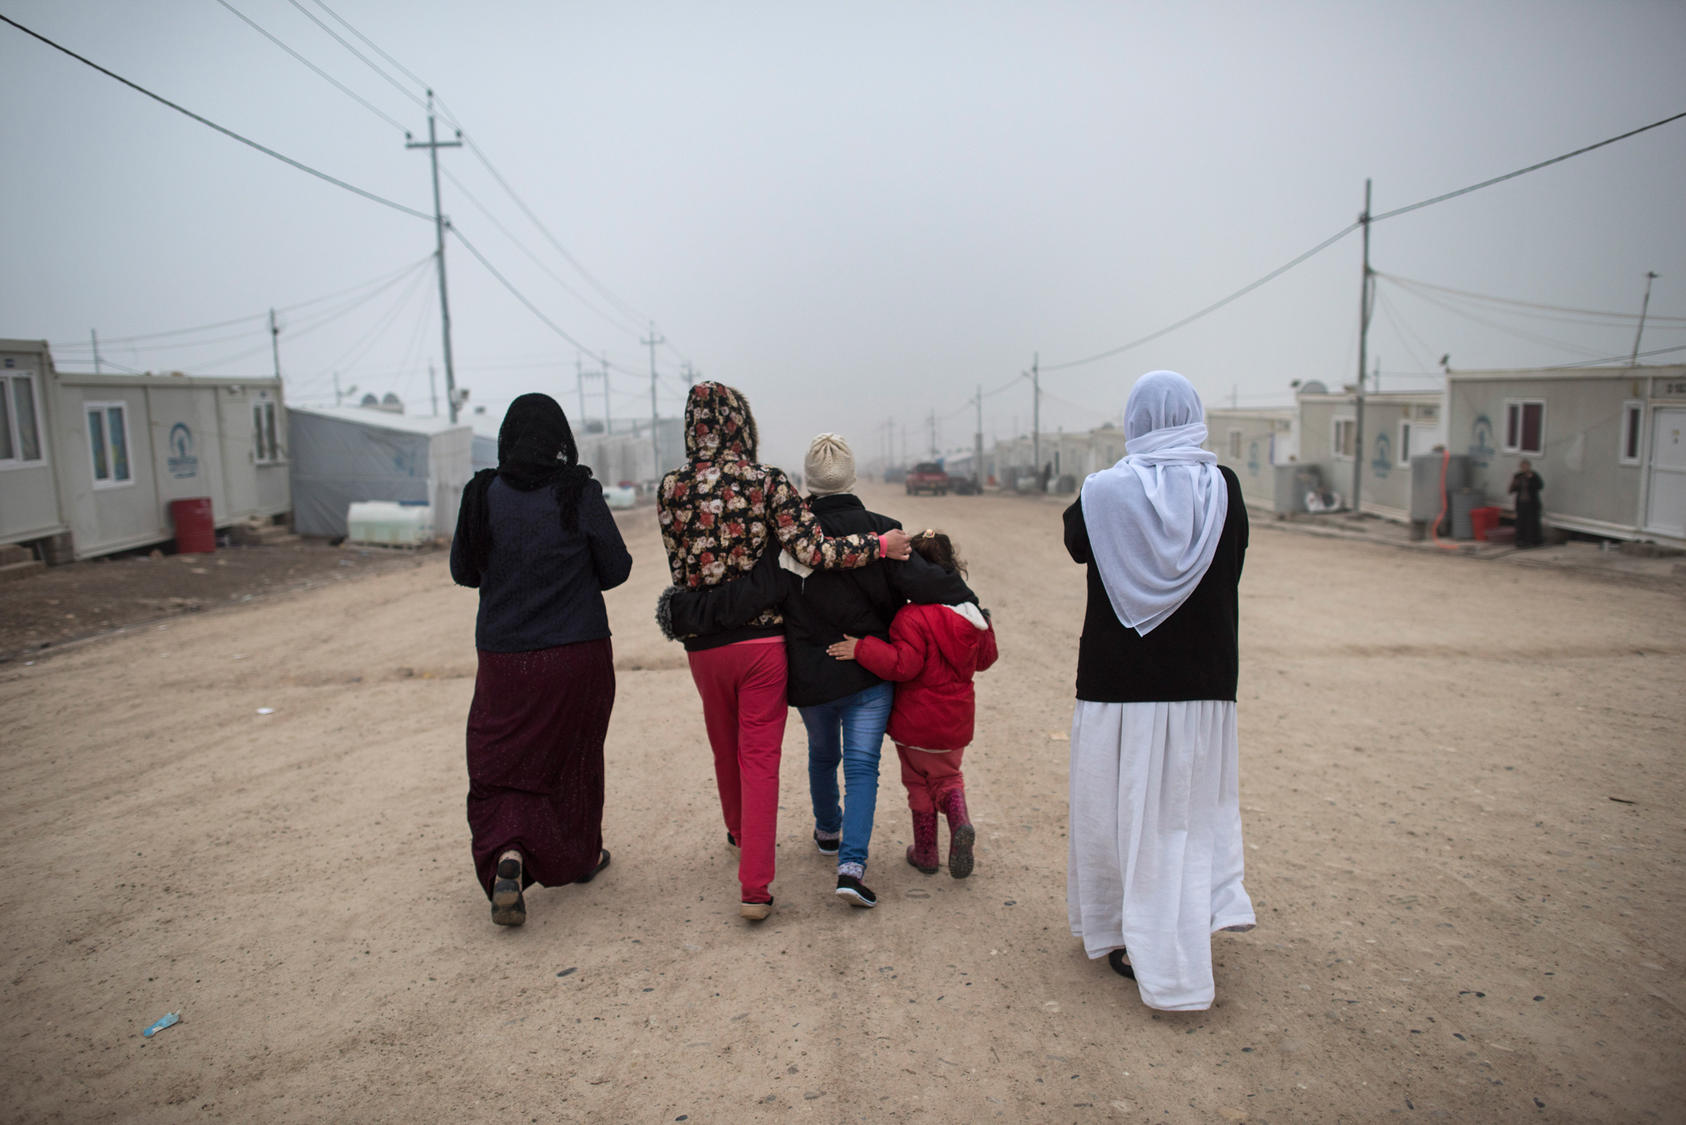 """M."", center, a Yazidi teen who escaped sex slavery under the Islamic State group, is comforted by relatives before leaving to be resettled in Germany, at a camp near Dohuk, Iraq, Jan. 24, 2016. Islamic State leaders have made sexual slavery integral to the group's operations, aggressively pushing birth control on the victims to keep the trade running. (Lynsey Addario/The New York Times)"